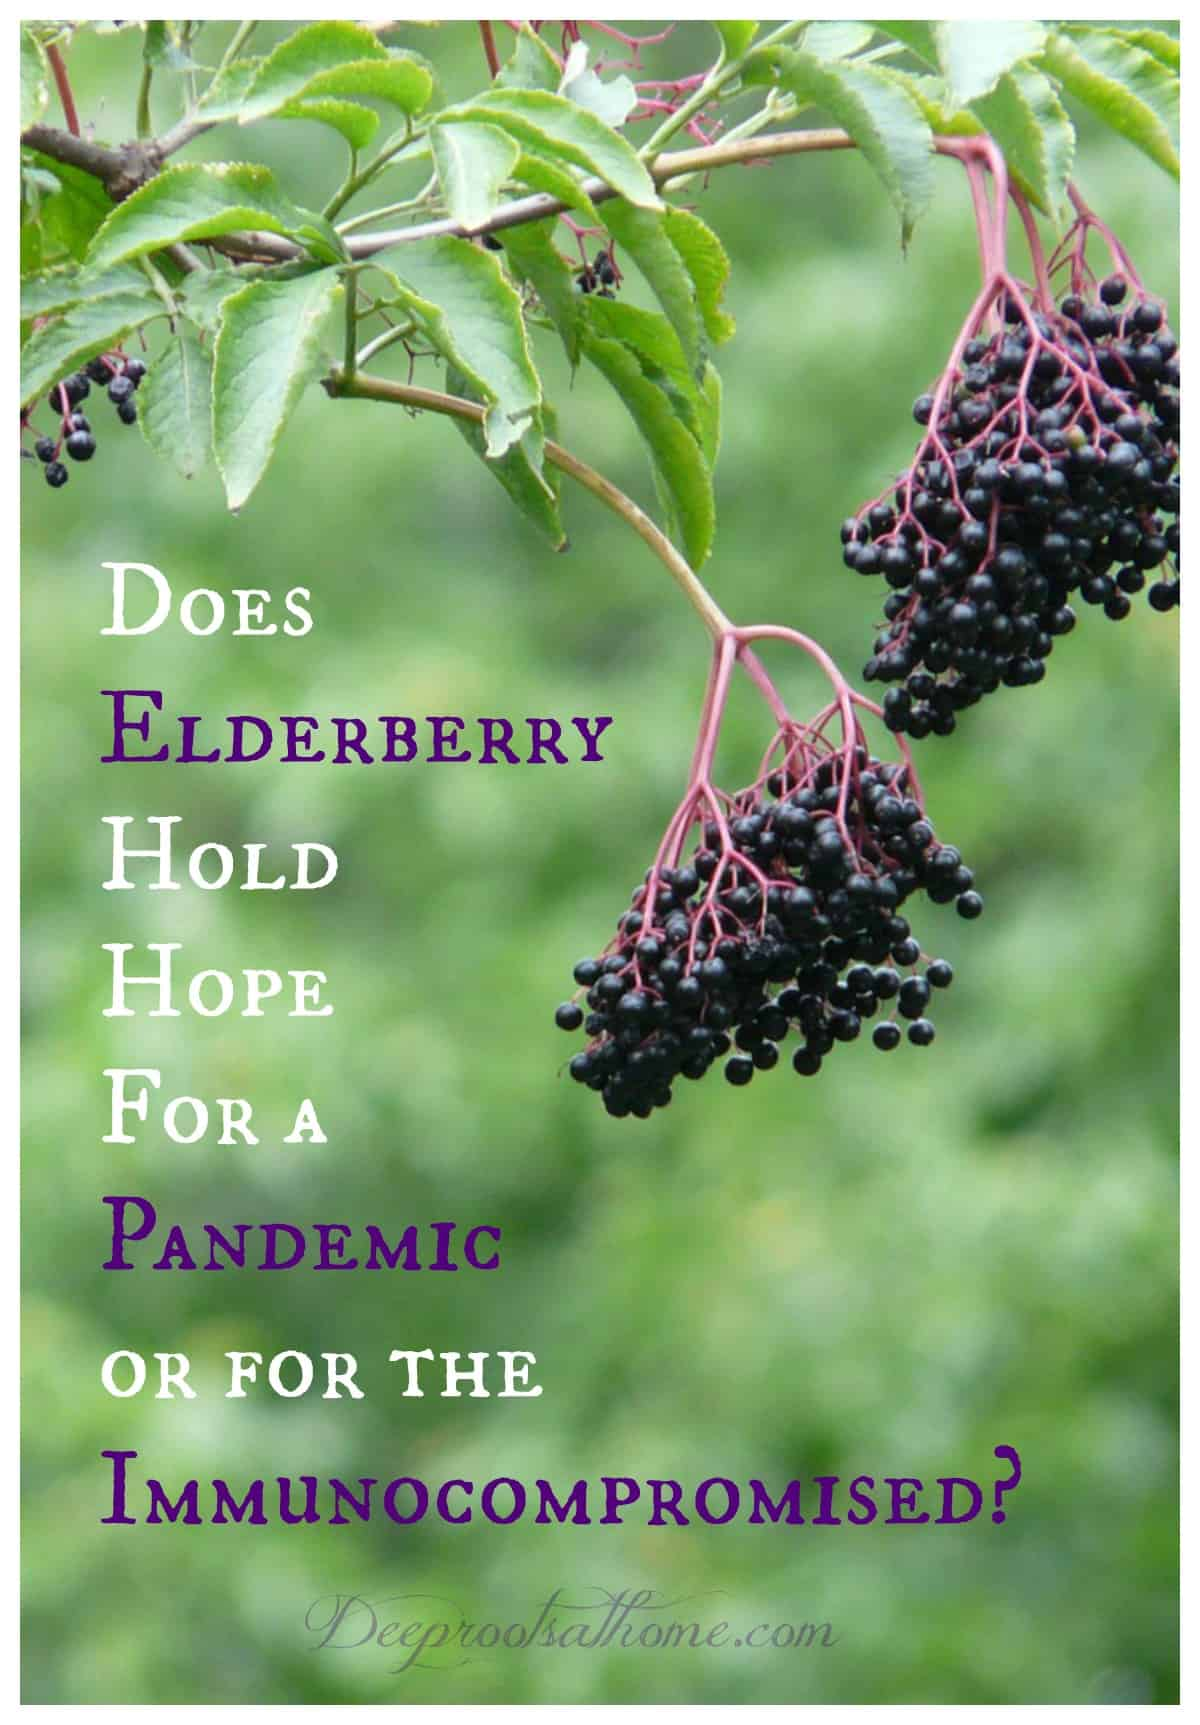 Does Elderberry Hold Hope For a Pandemic or for the Immunocompromised? Ripe elderberry fruit (sambucus nigra)